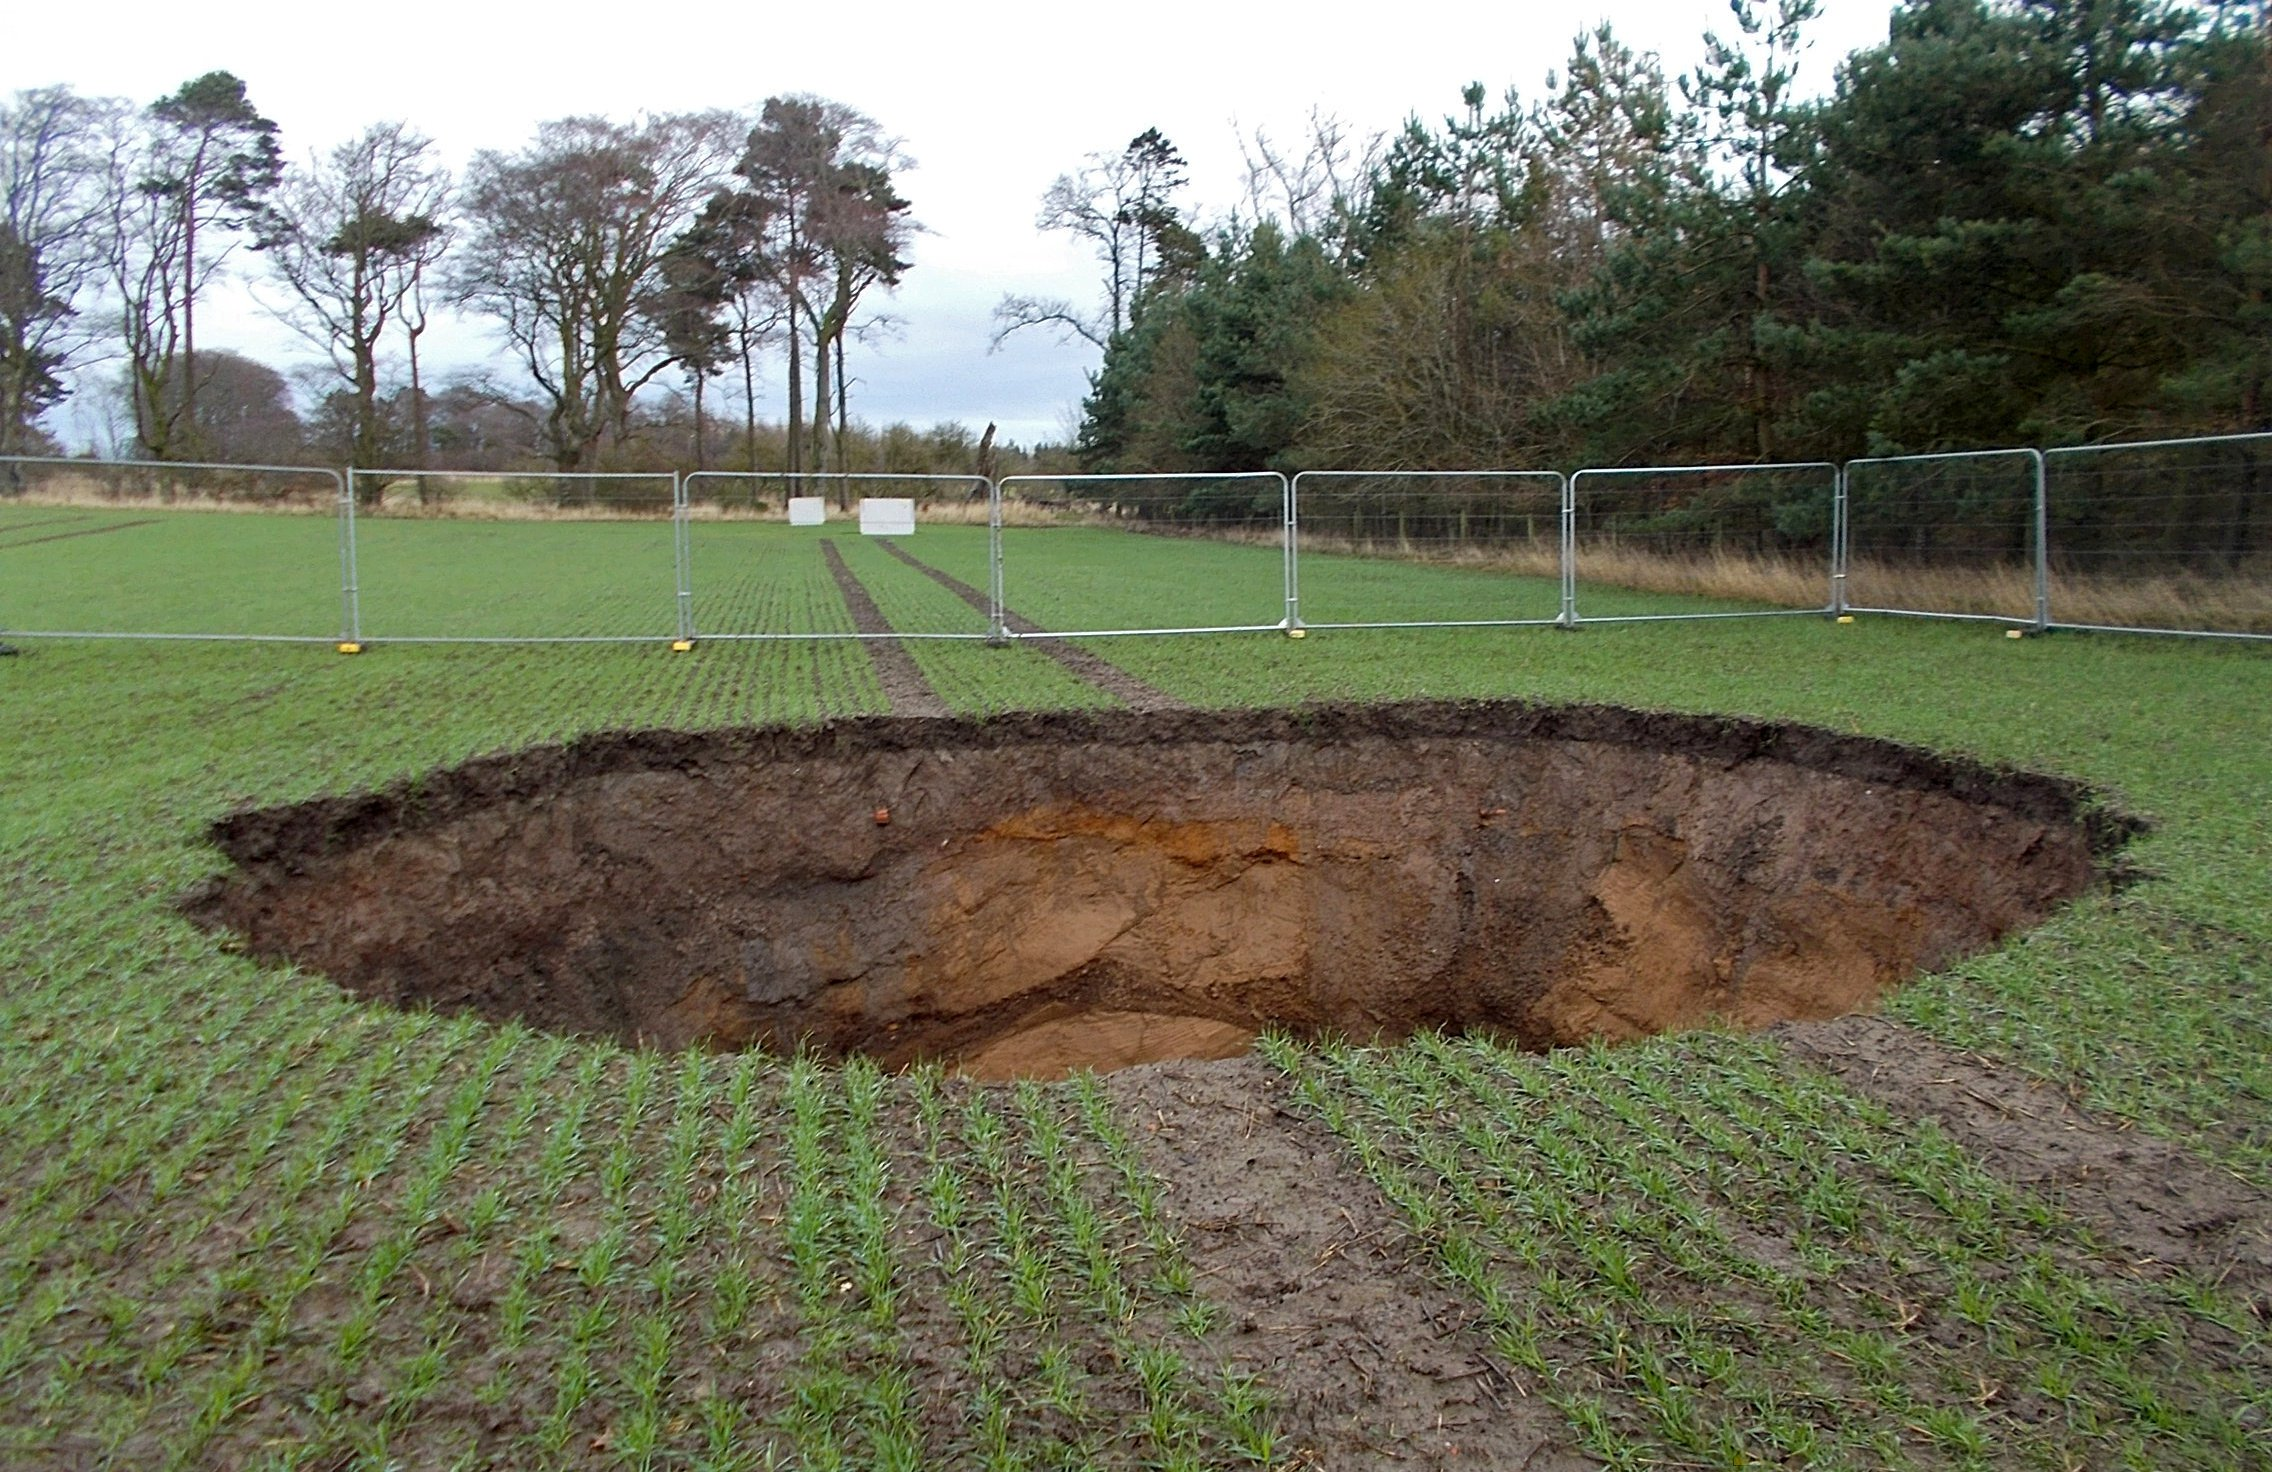 """A sinkhole 10m wide and 6m deep has opened up in a field in Midlothian. See SWNS story SWSChole; Shocking picture shows a 6m deep hole in a wheat field spotted by a landowner. The public safety and subsidence team at the Coal Authority were alerted to a 10m wide hole in a field in Midlothian. The safety team say the hole has been made safe while they investigate the cause by checking geological and mining plans. James Hammond, regional project manager for the public safety and subsidence team at the Coal Authority, said: """"In December 2018, we received a report of a hole in a field in North Midlothian."""